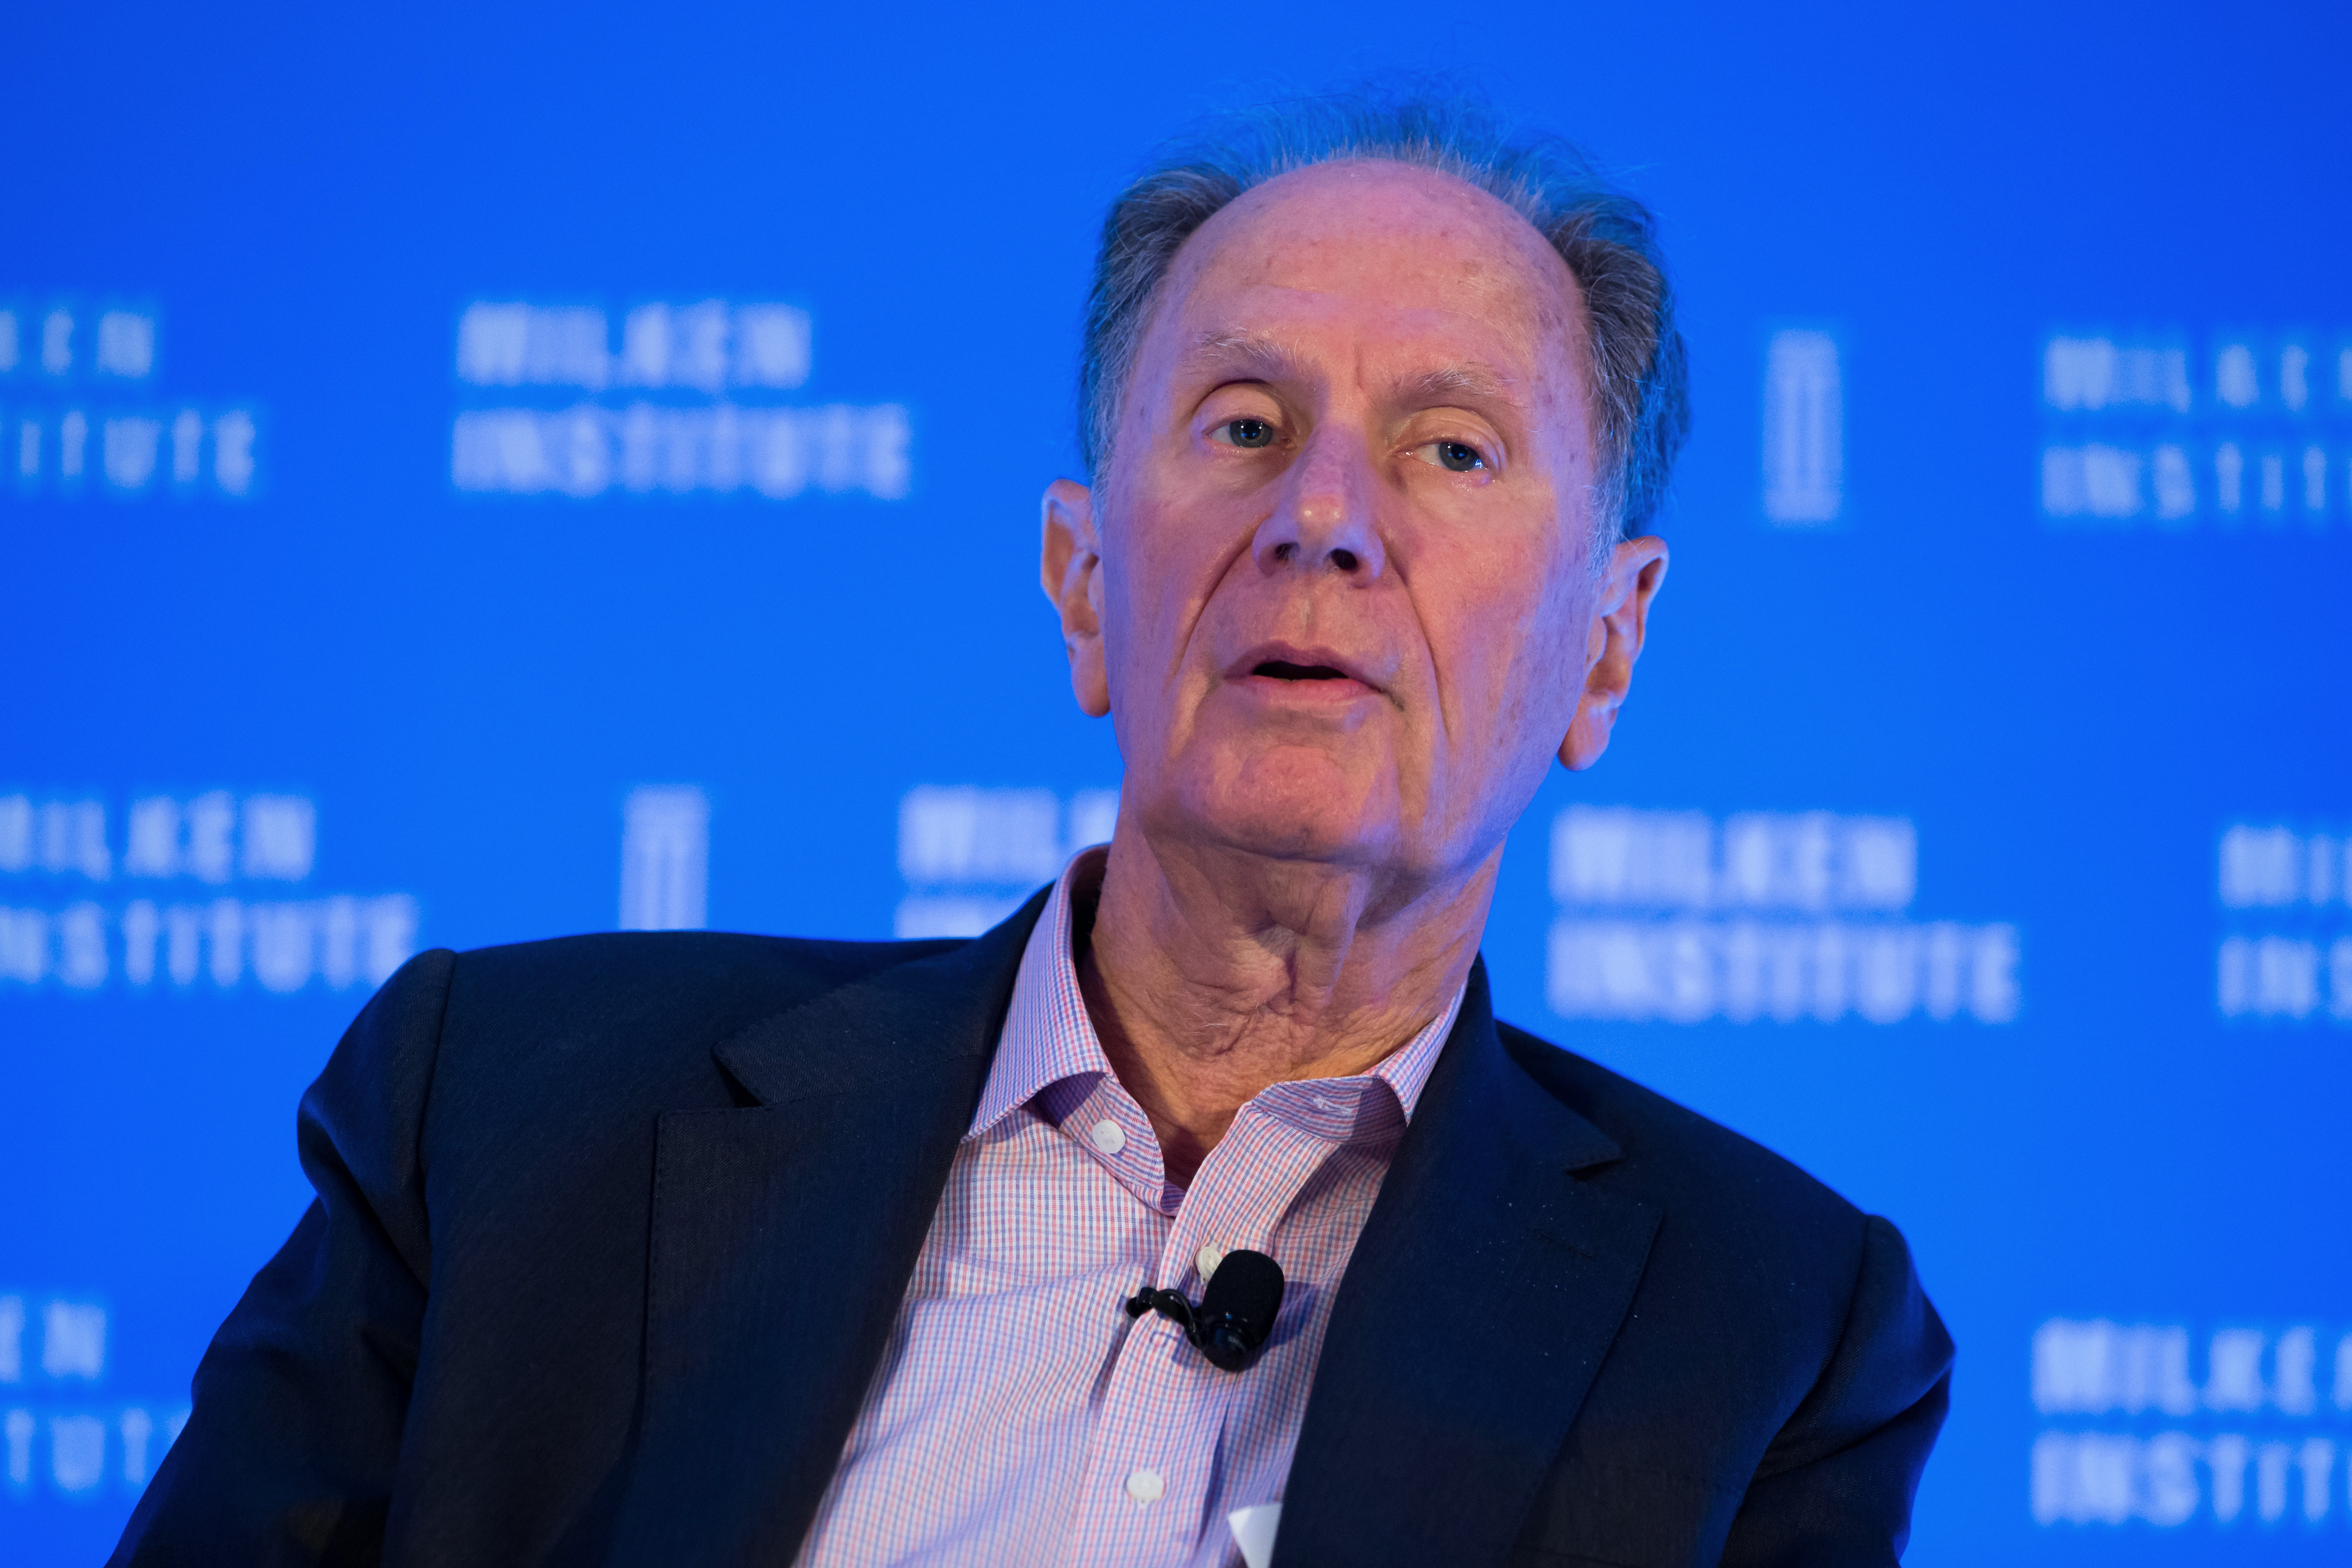 David Bonderman, co-founder and chairman of TPG Holdings LP, speaks at the Milken Institute Asia Summit in Singapore, on Friday, Sept. 16, 2016.